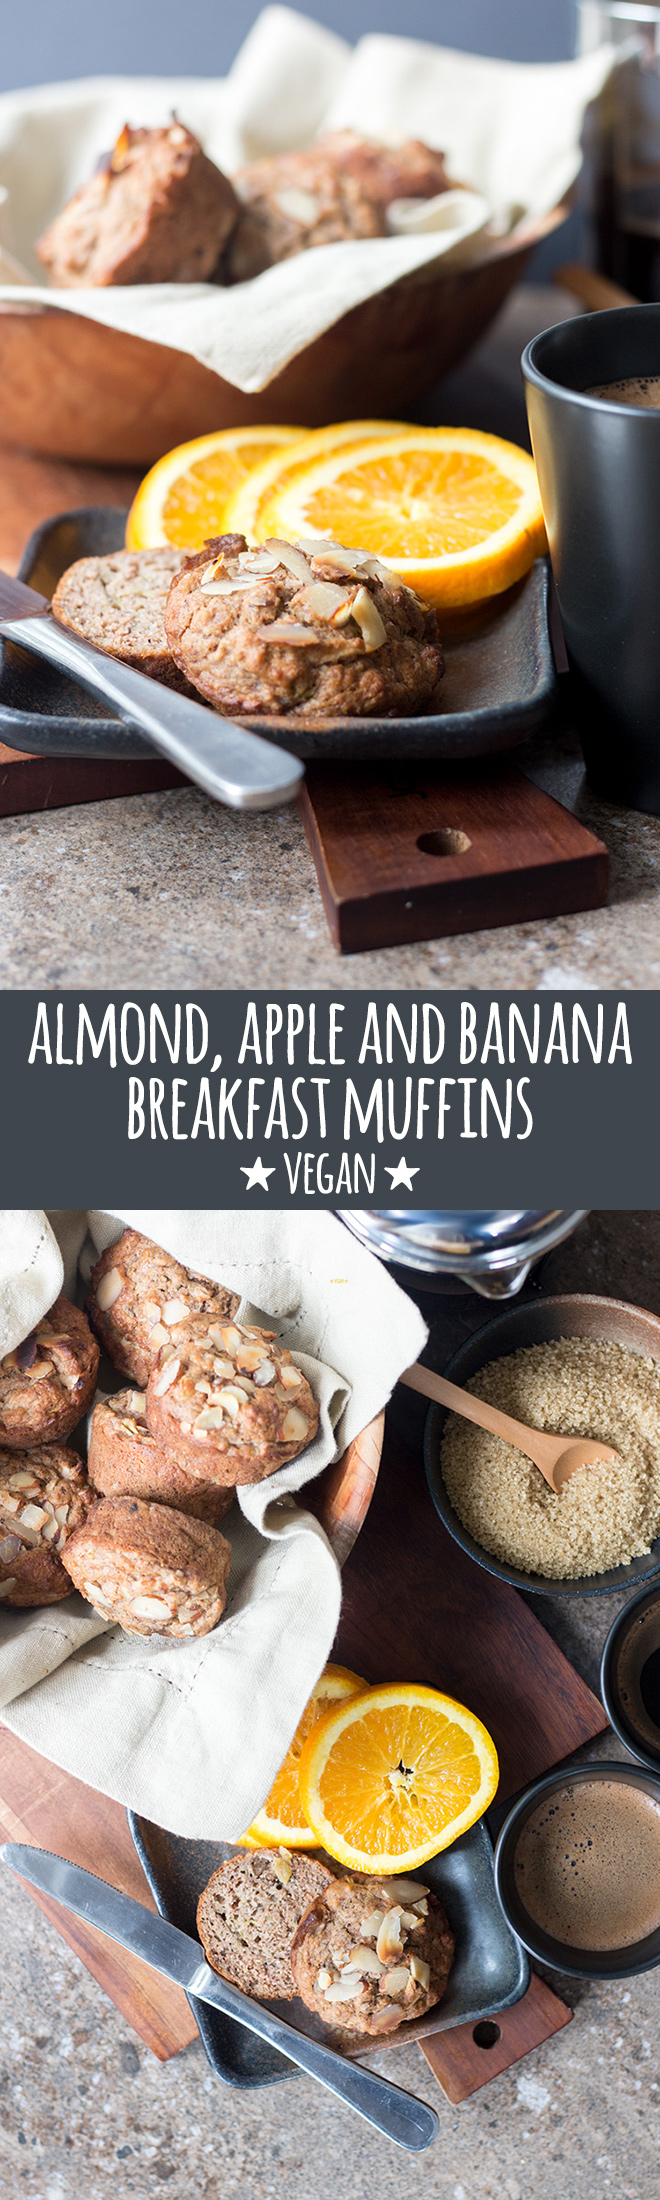 Nourishing almond, apple and banana muffins made with mixed flours and a good dose of LSA are a healthy snack or breakfast on the go.